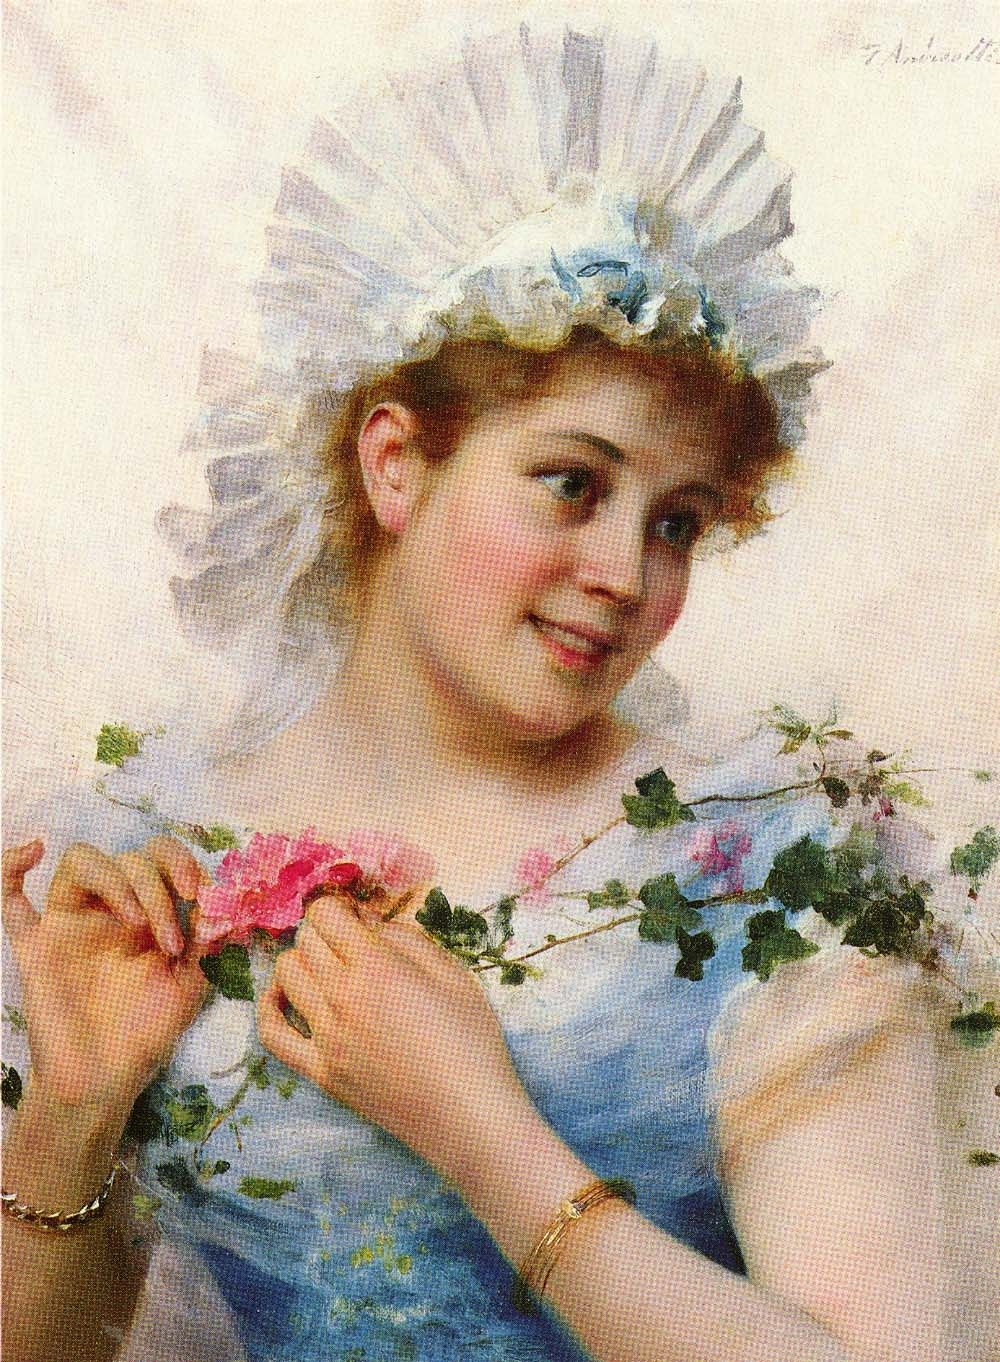 Federico Andreotti A Young Girl With Roses